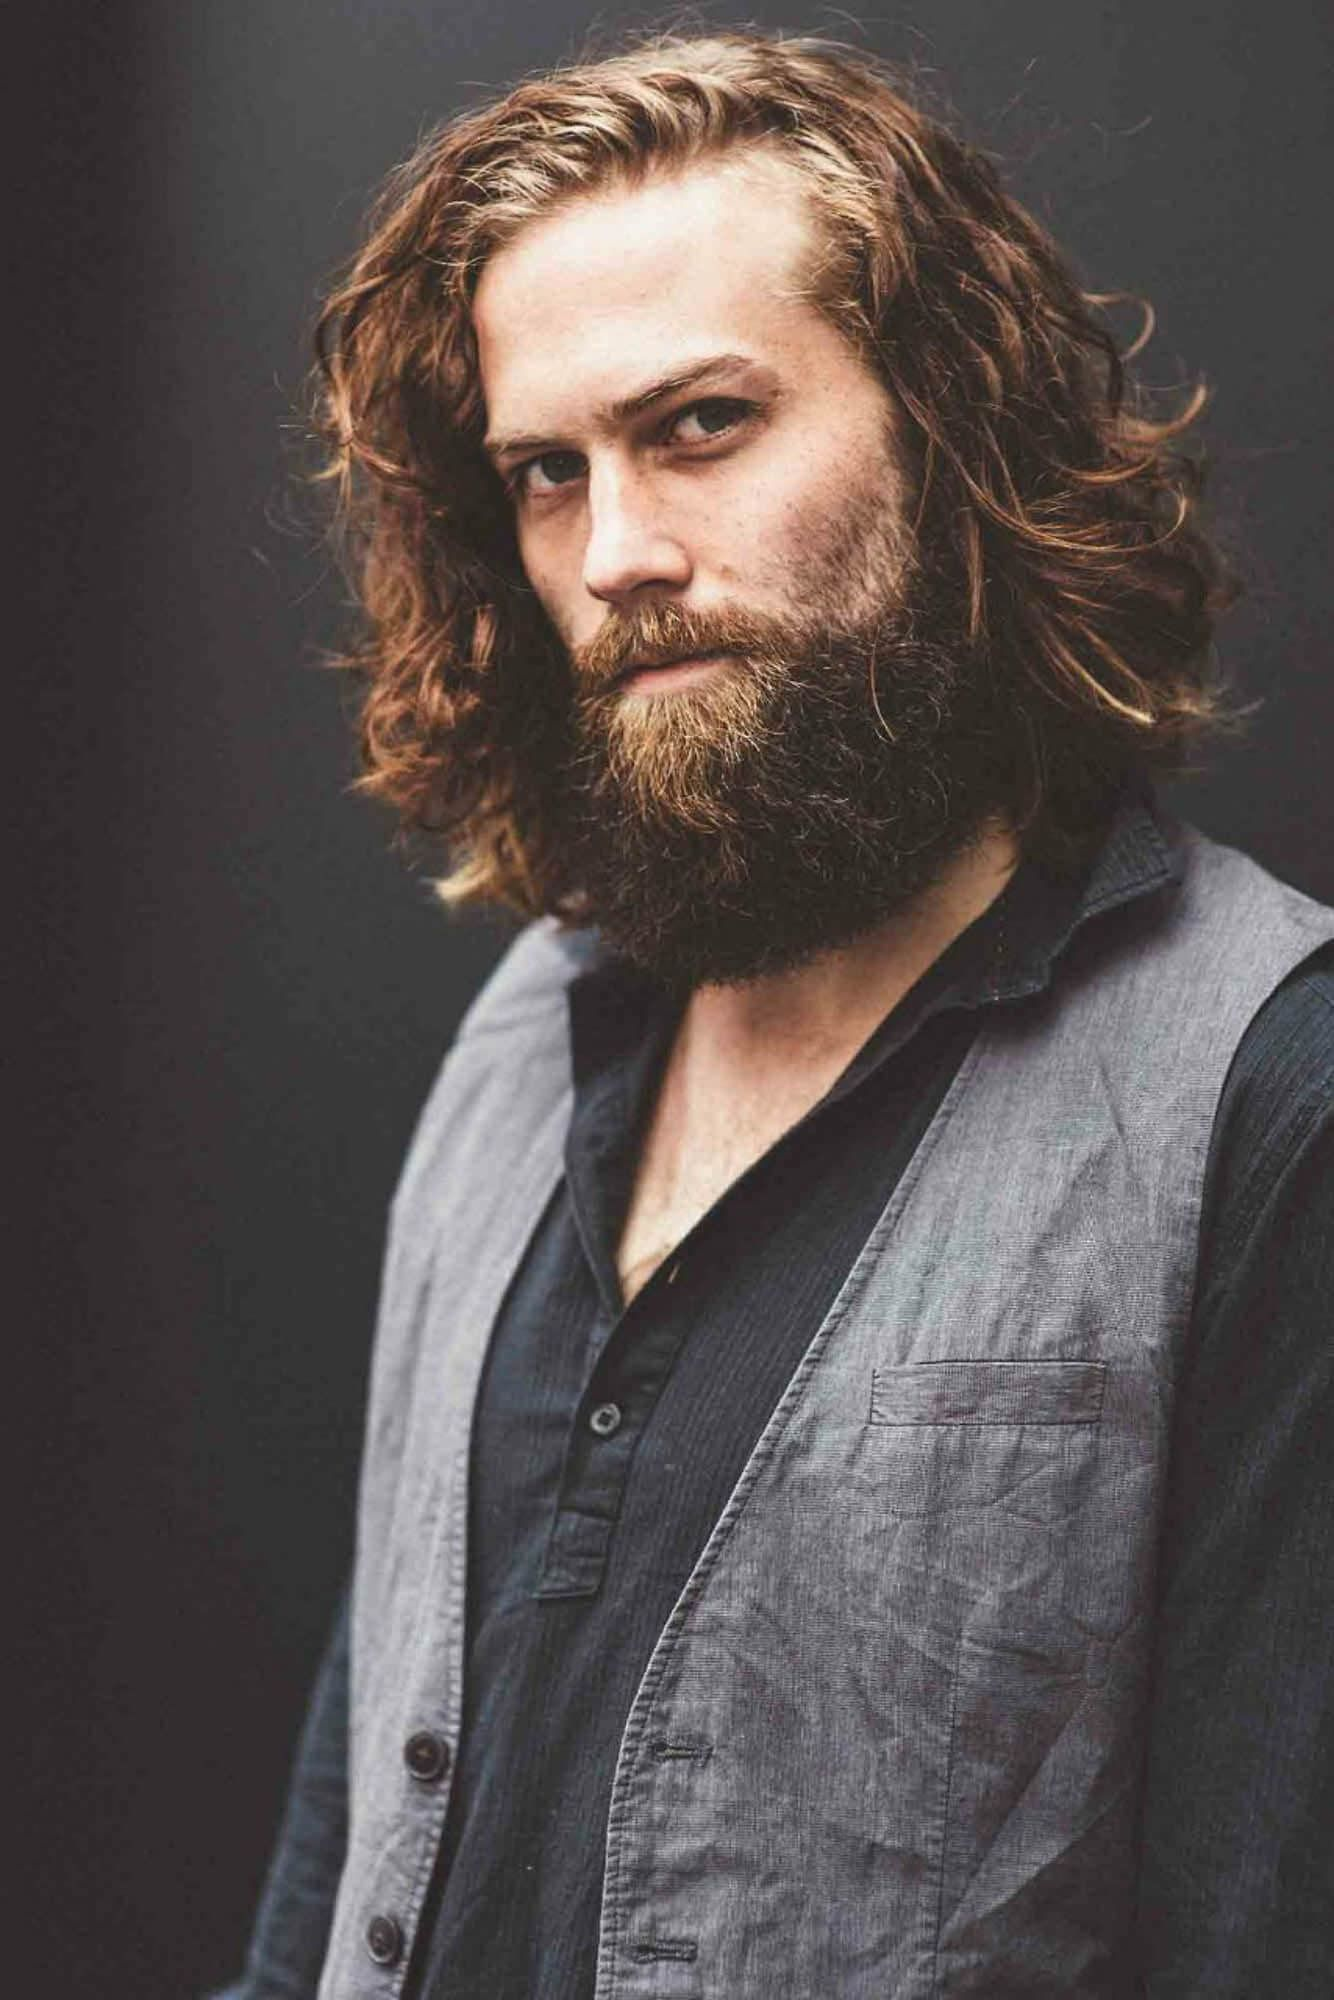 Boy hairstyle 2018 simple best sexy long hairstyles for men   mens hairstyles in